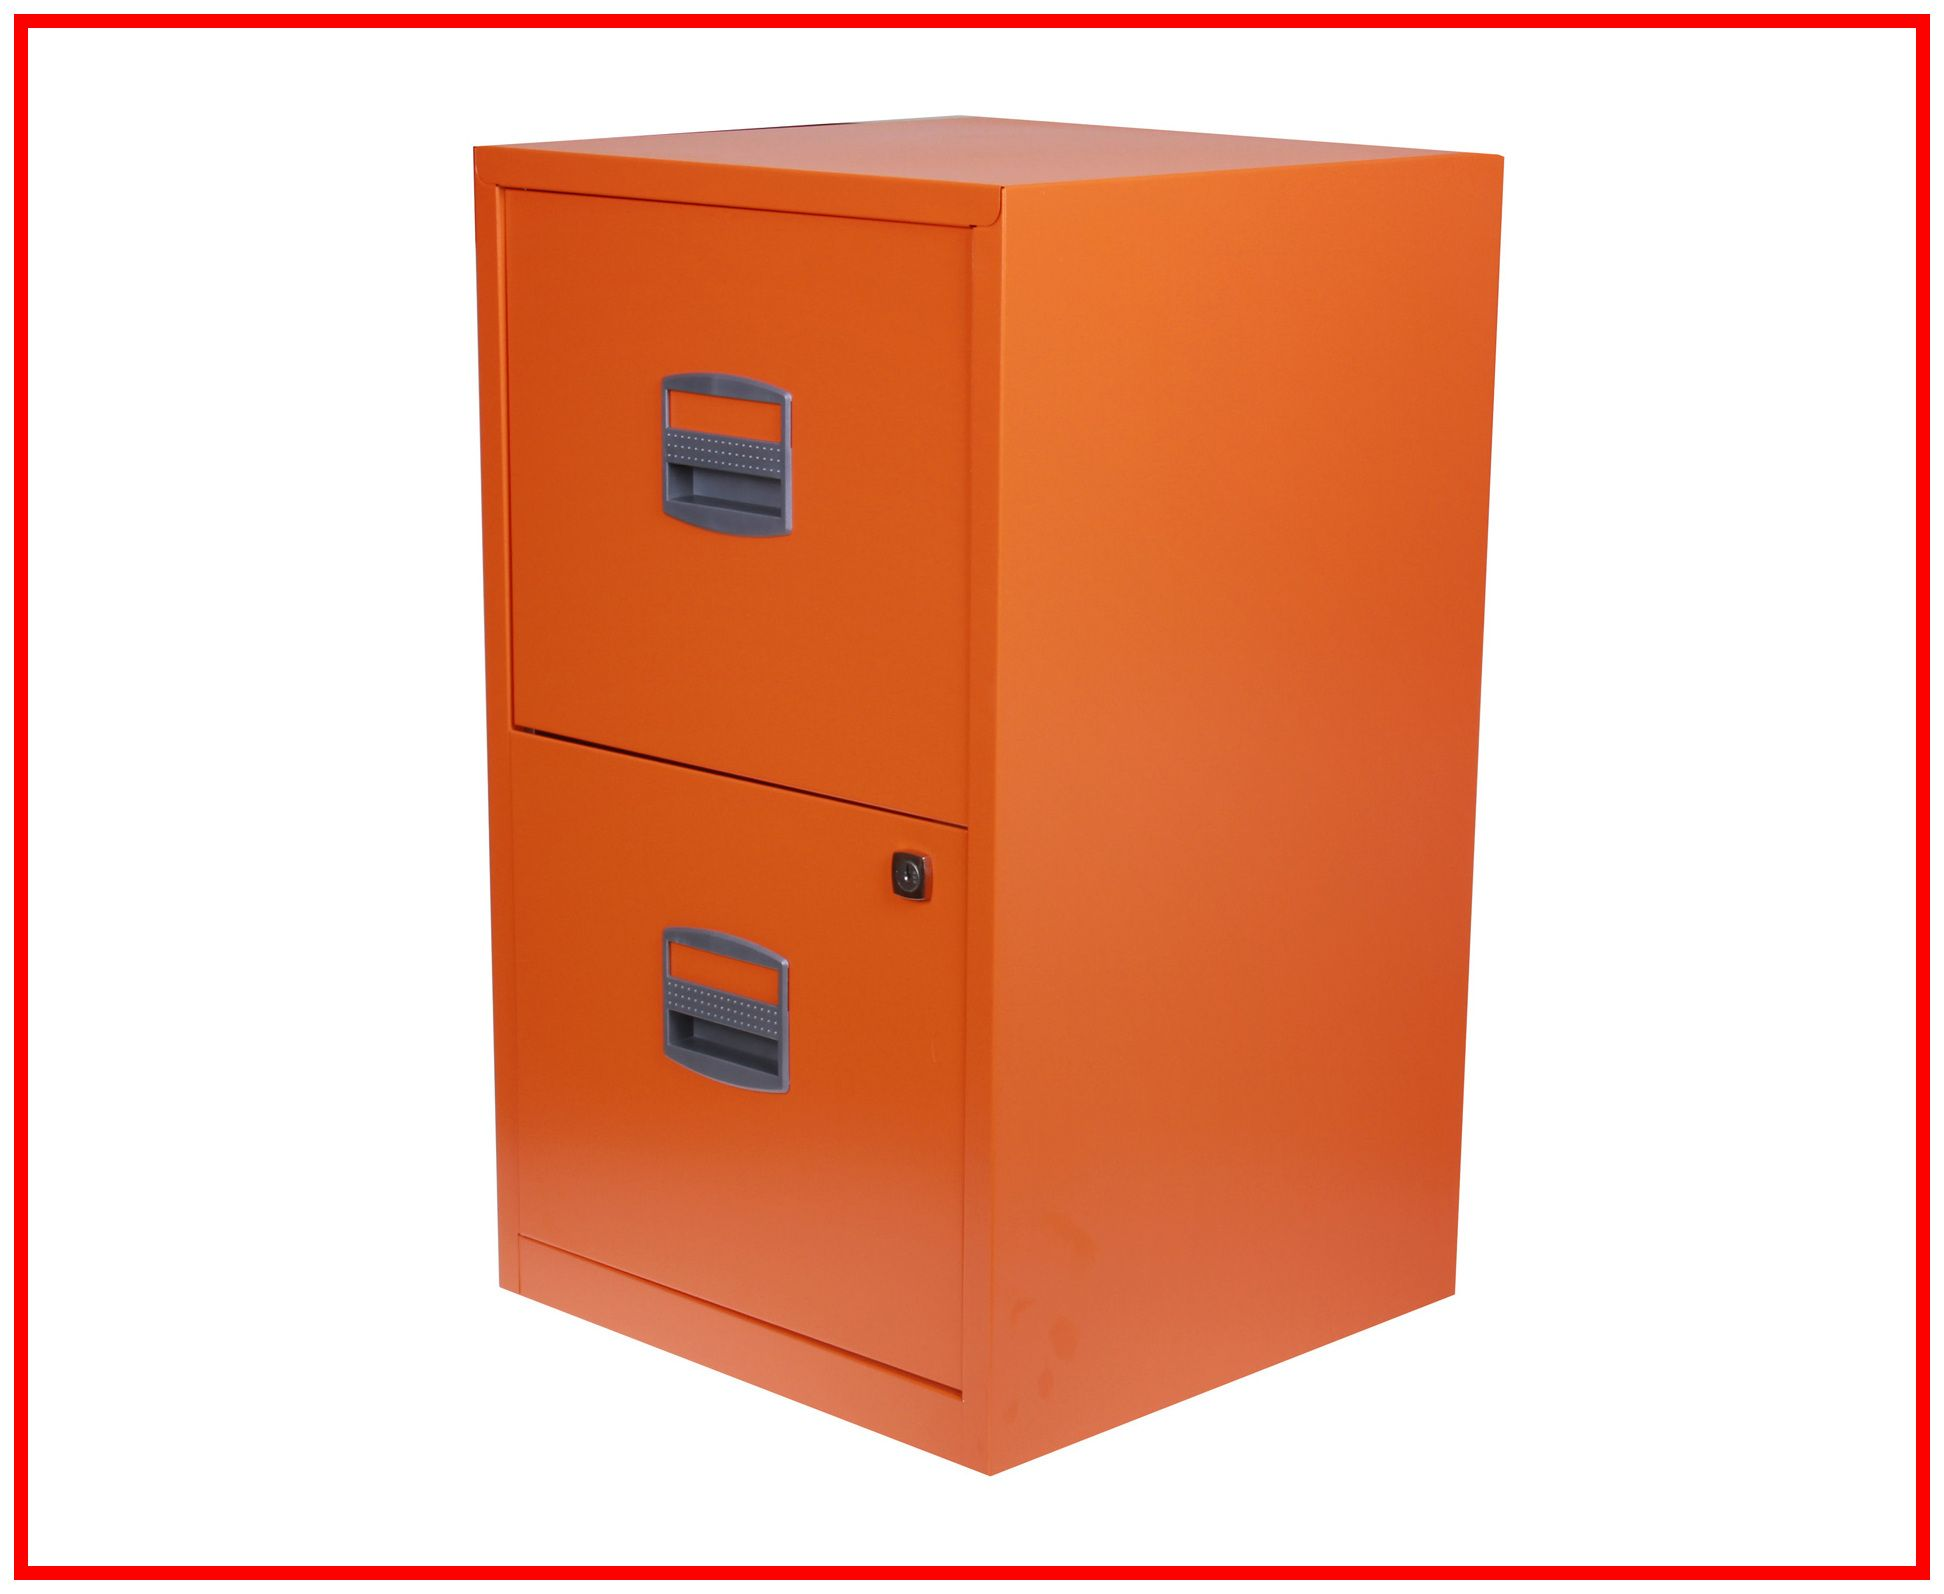 87 Reference Of 2 Drawer Filing Cabinet Bisley In 2020 Filing Cabinet Drawer Filing Cabinet Filing Cabinet Storage